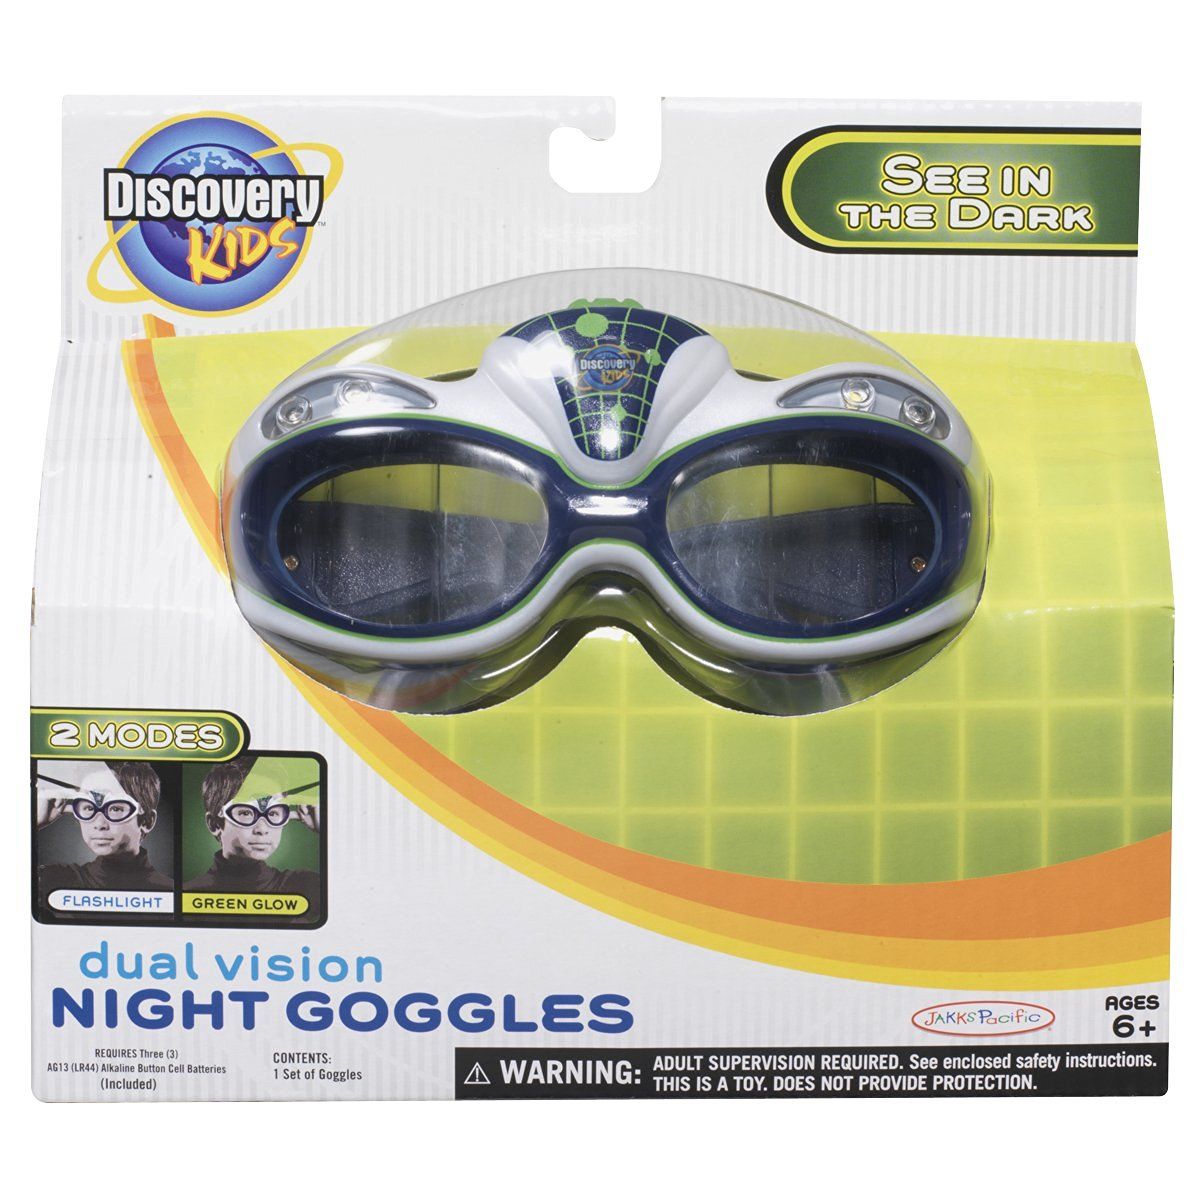 Discovery Kids Discovery Kids Dual Vision Night Goggles 2